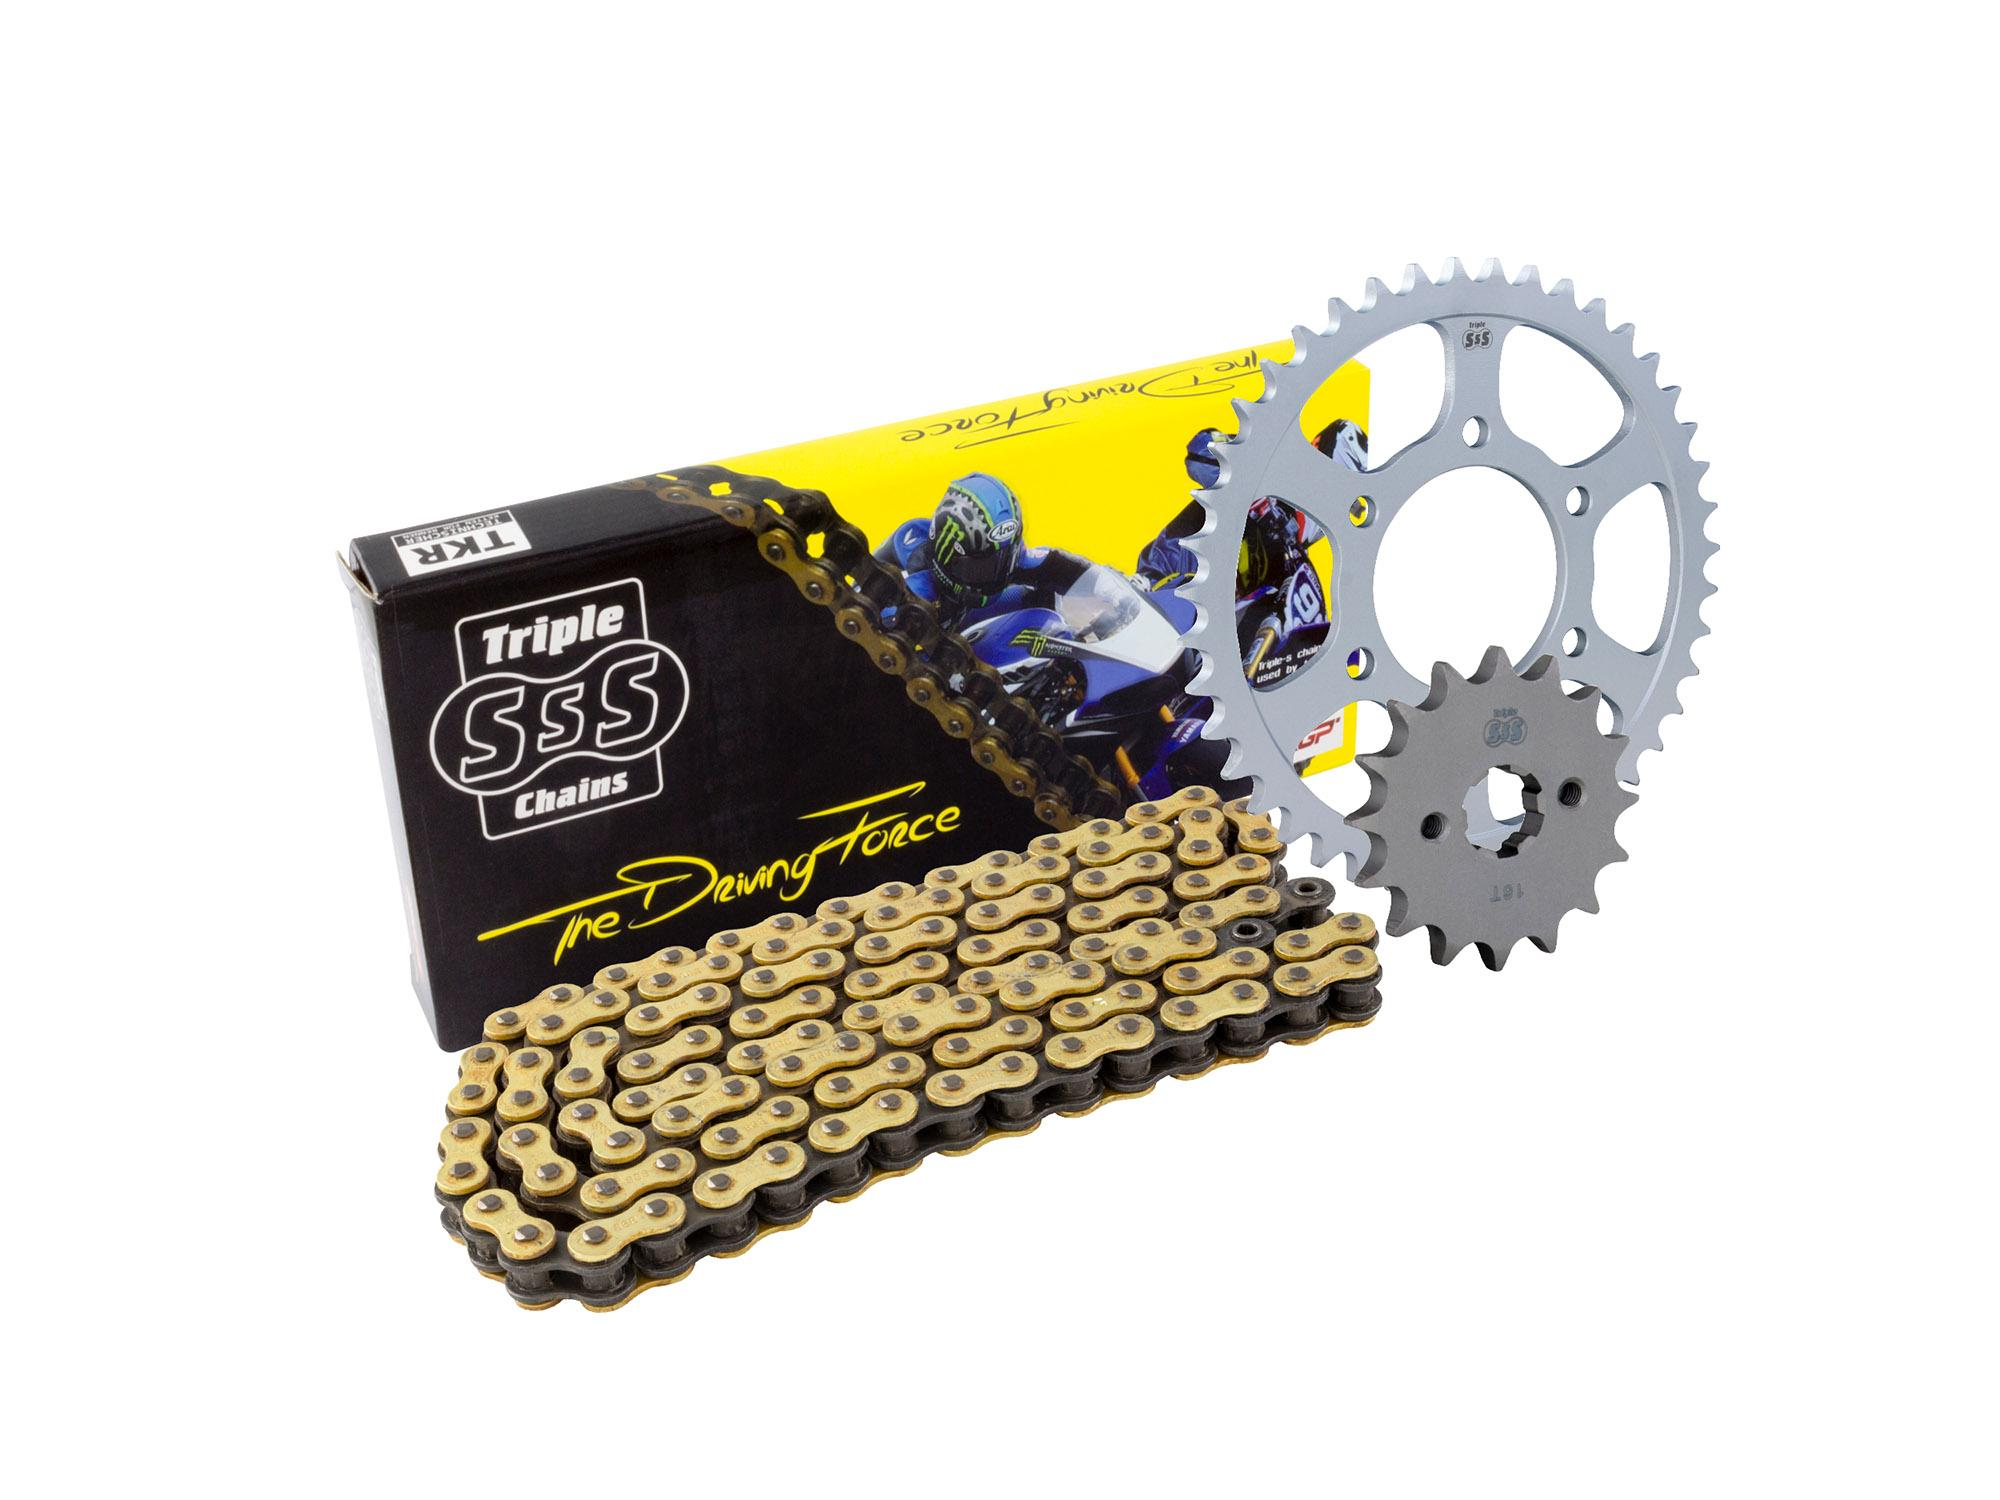 Honda CBR650F, CB650F 14-16 Chain & Sprocket Kit: 16T Front, 42T Rear, HD O-Ring Gold Chain 525H 118Link